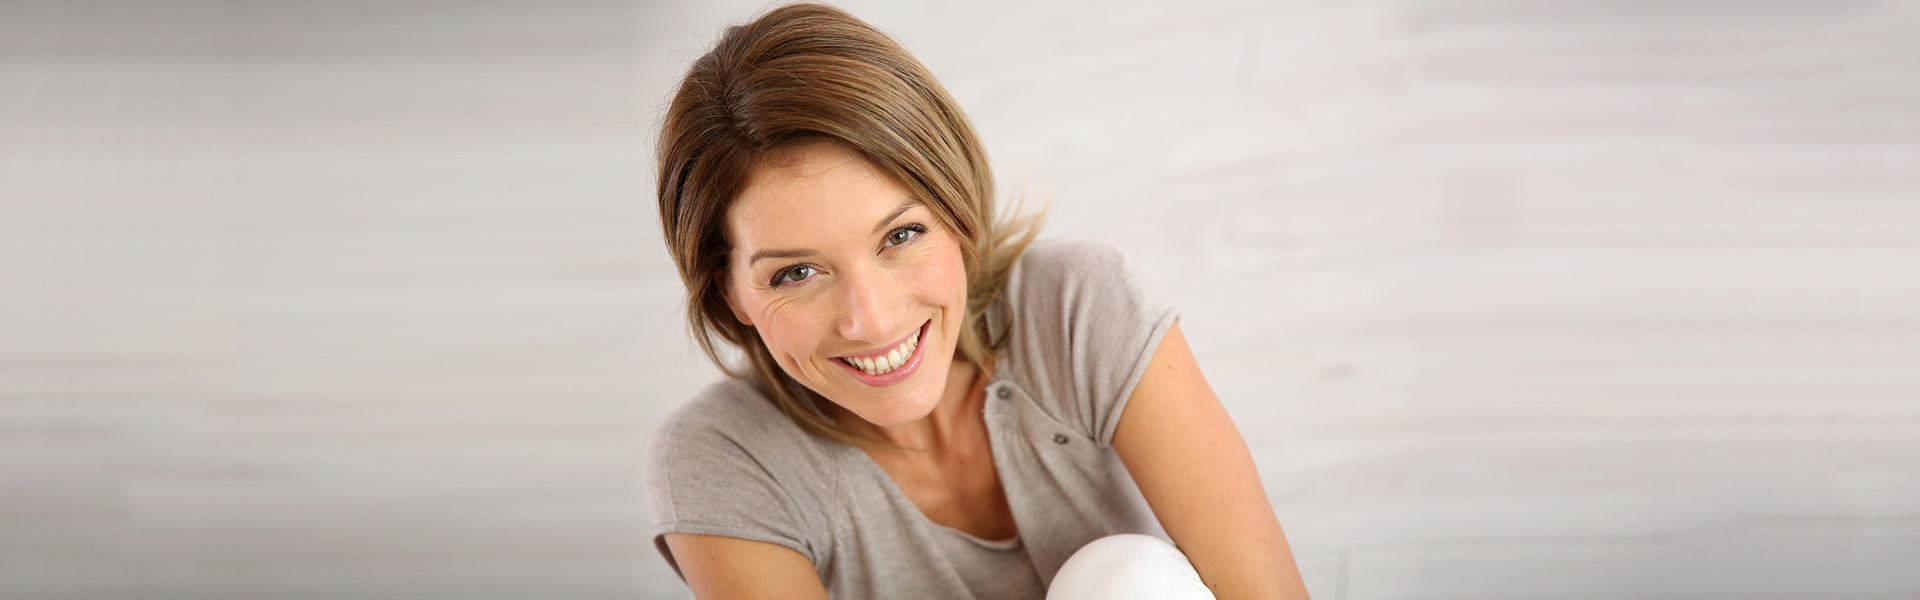 Did You Know that Cosmetic Dentistry Can Improve Your Oral Health?